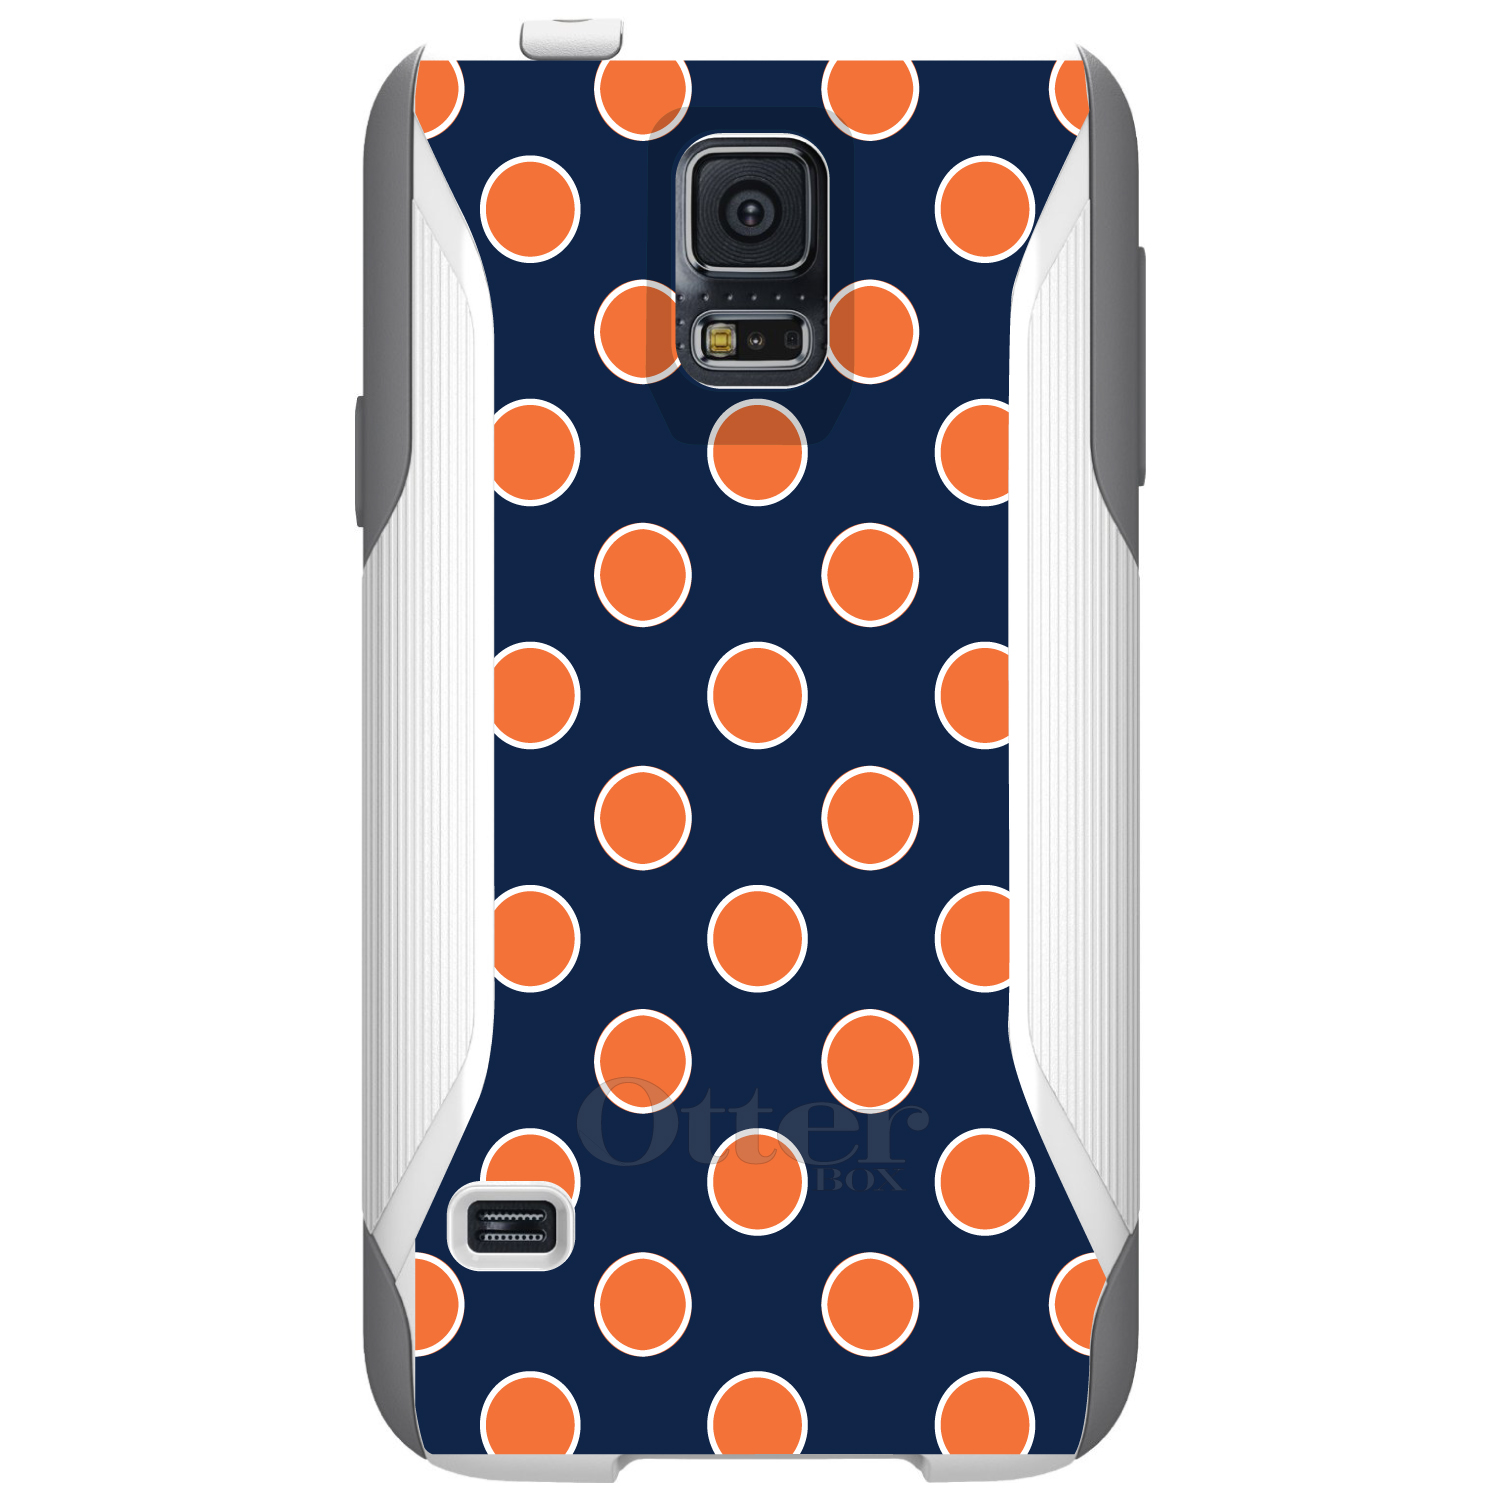 DistinctInk™ Custom White OtterBox Commuter Series Case for Samsung Galaxy S5 - Navy Orange White Polka Dots